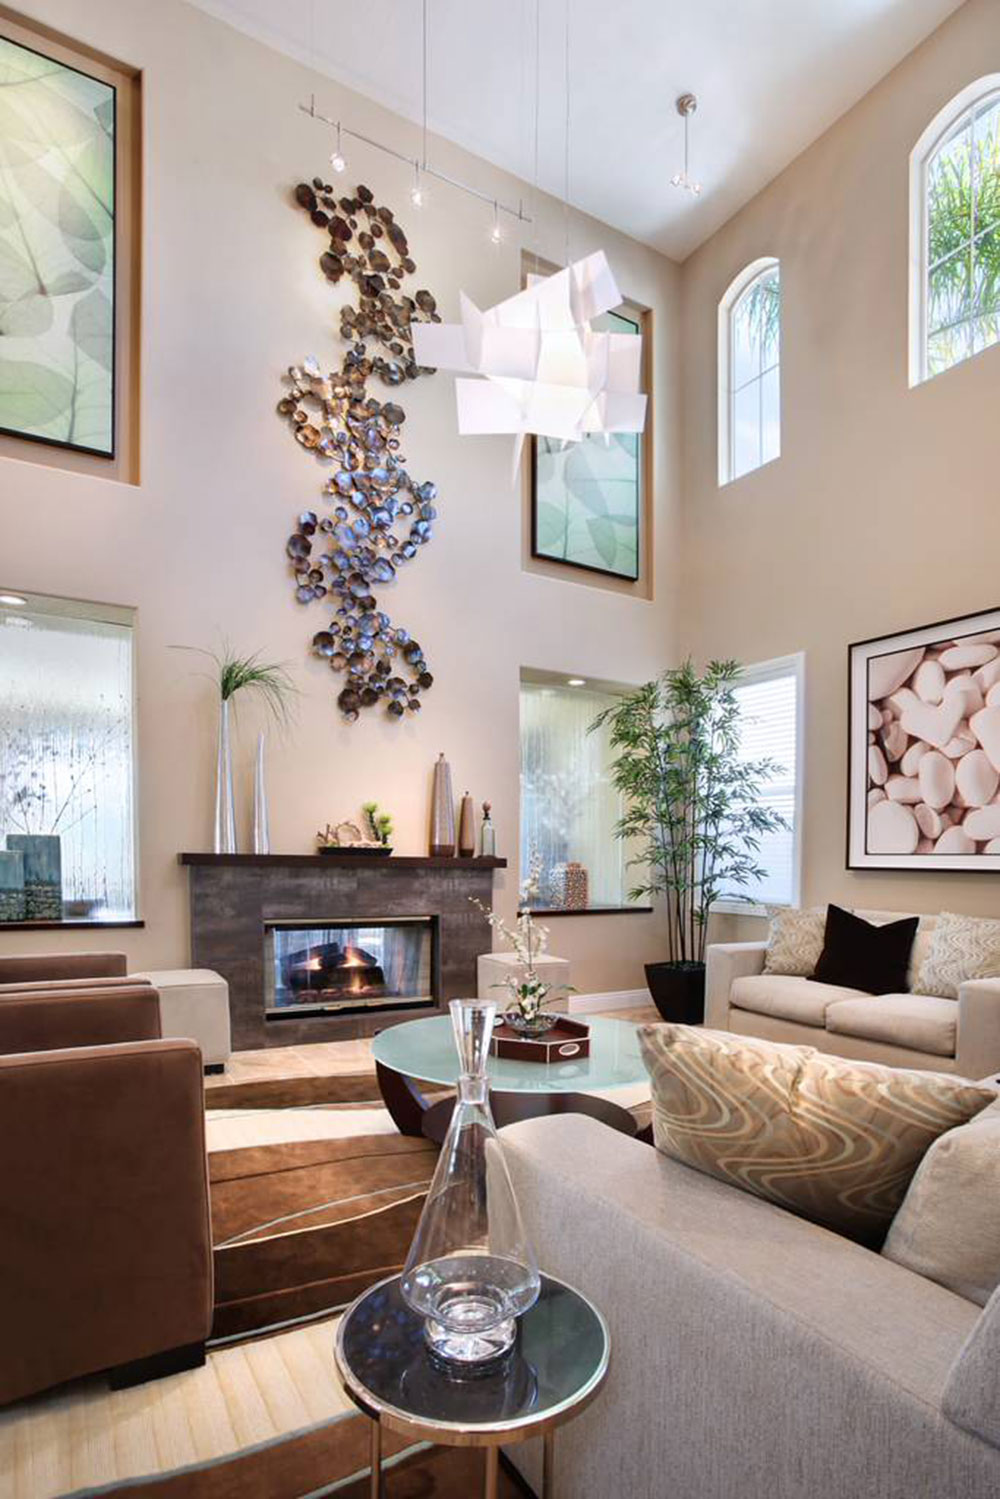 How To Decorate A Room With High Ceilings